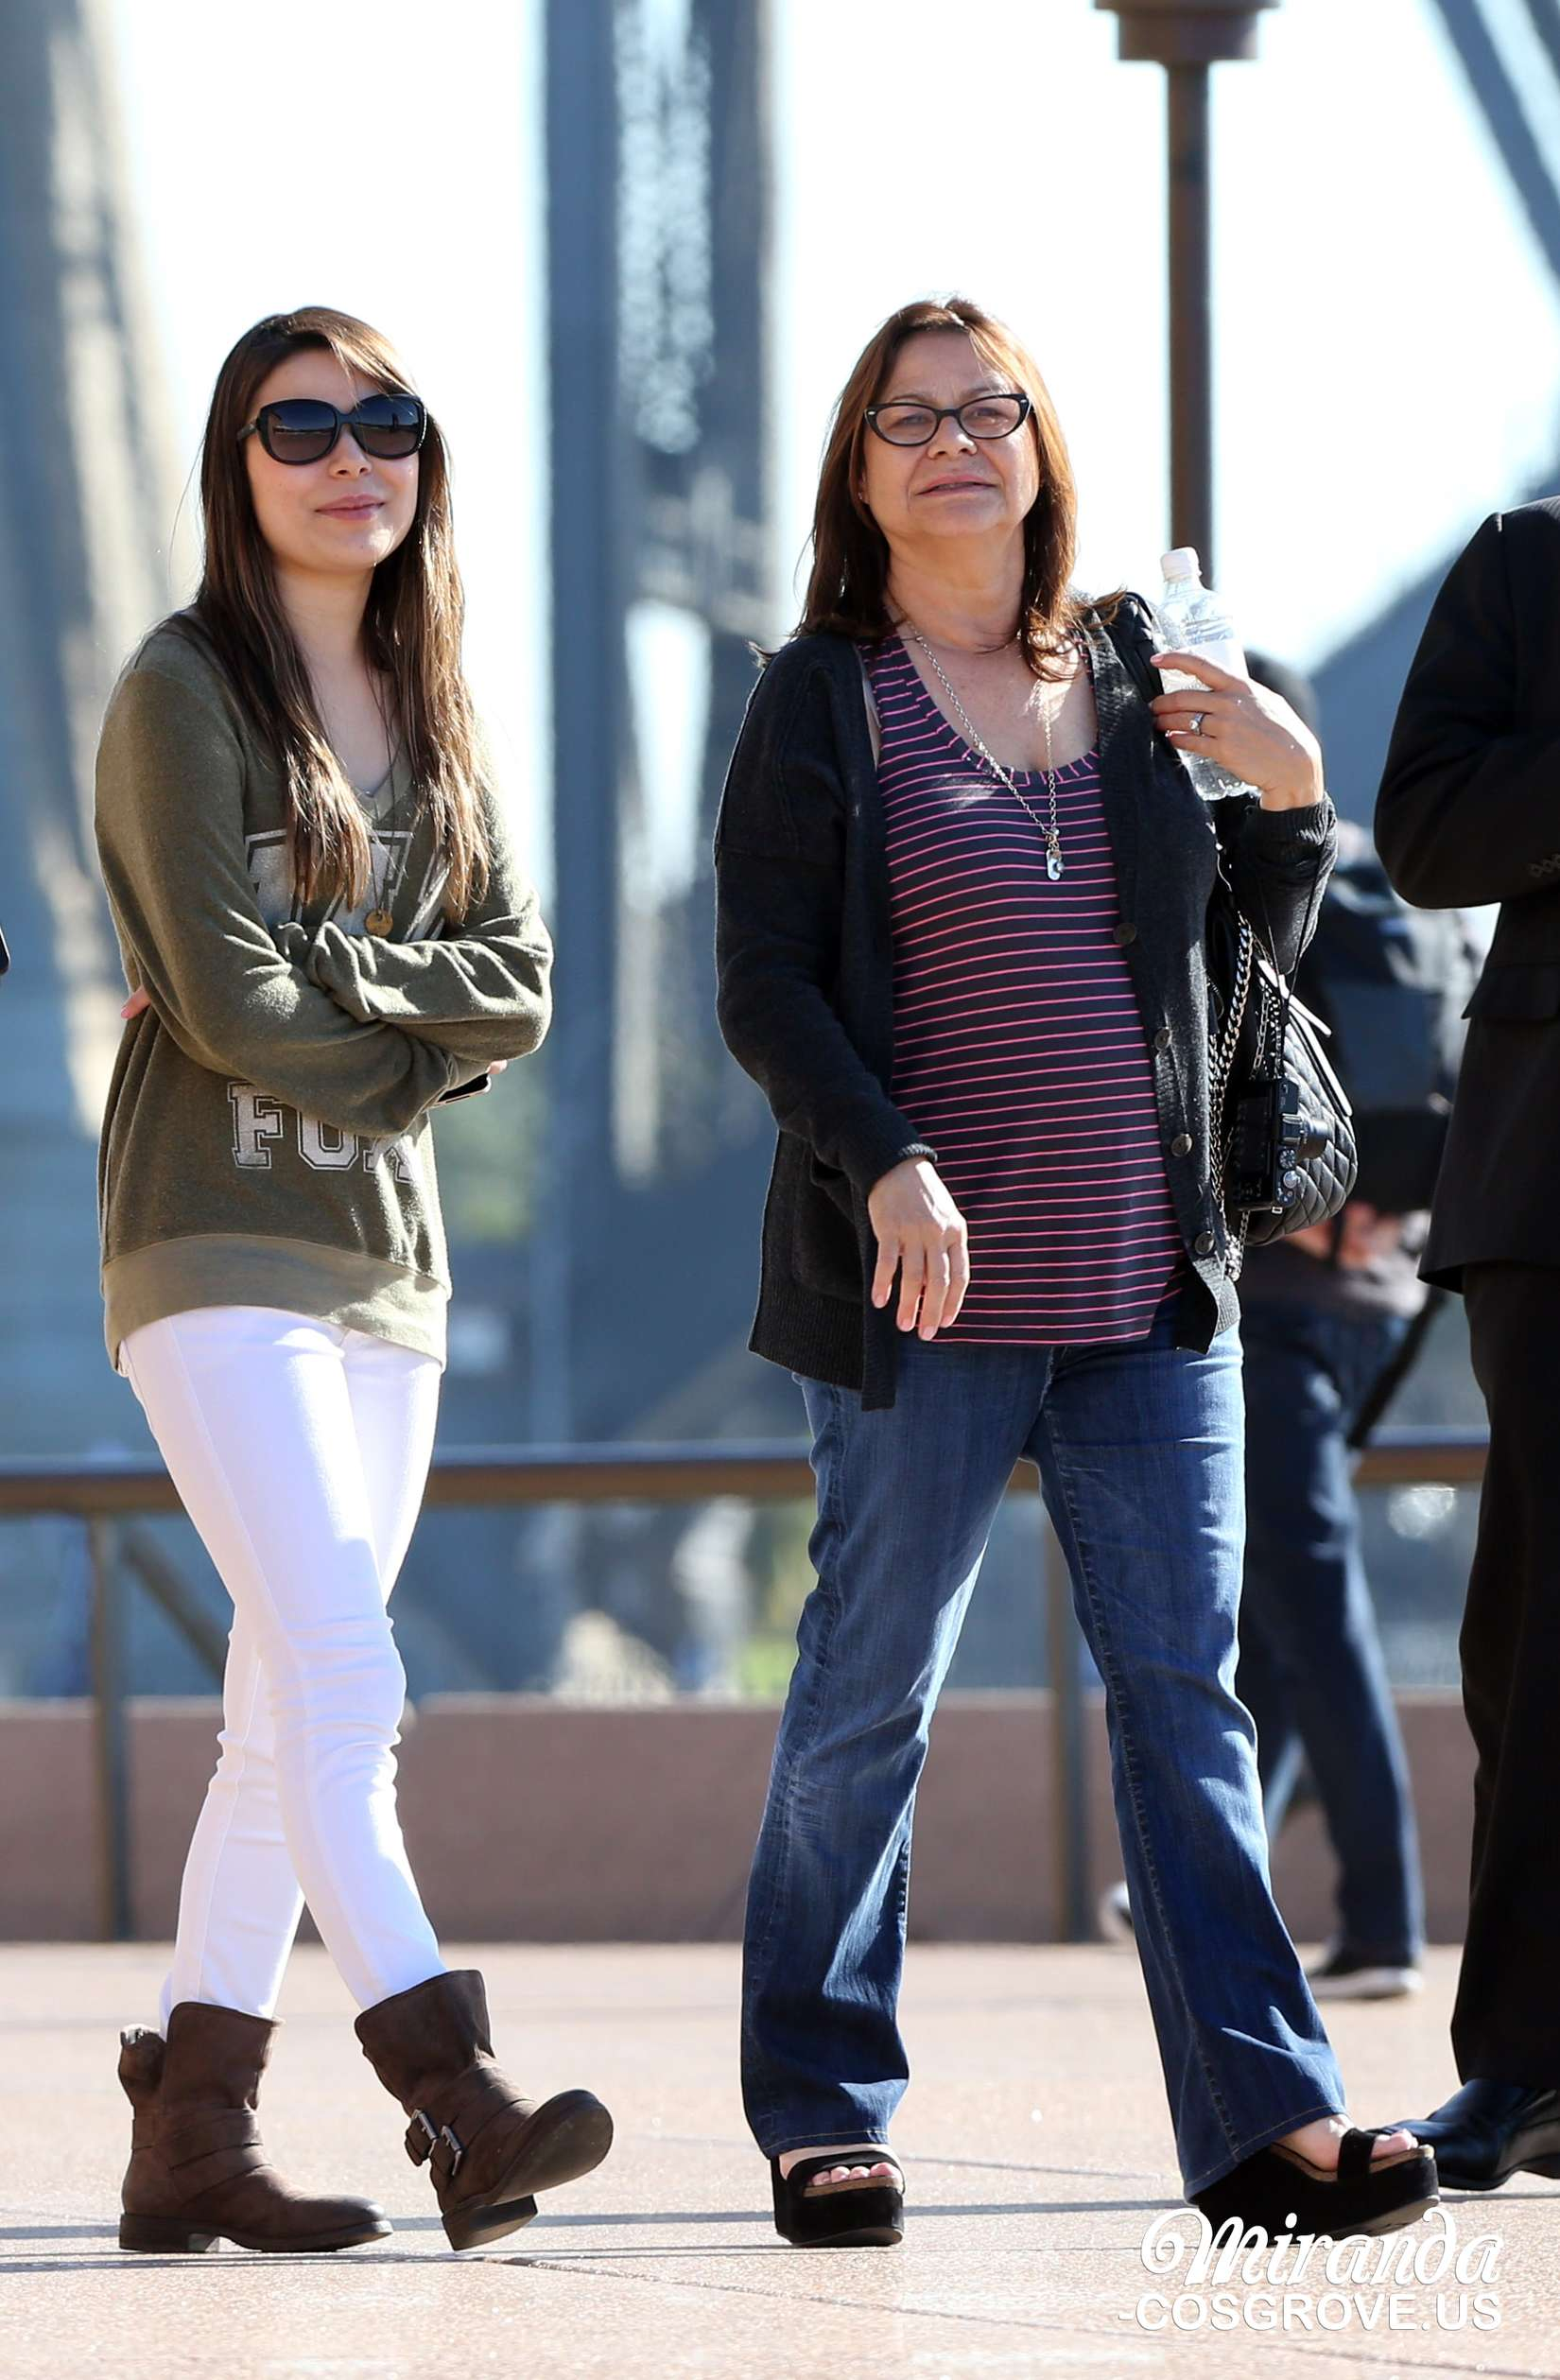 Miranda Cosgrove at The Sydney Opera House -07 - Full SizeMiranda Cosgrove House